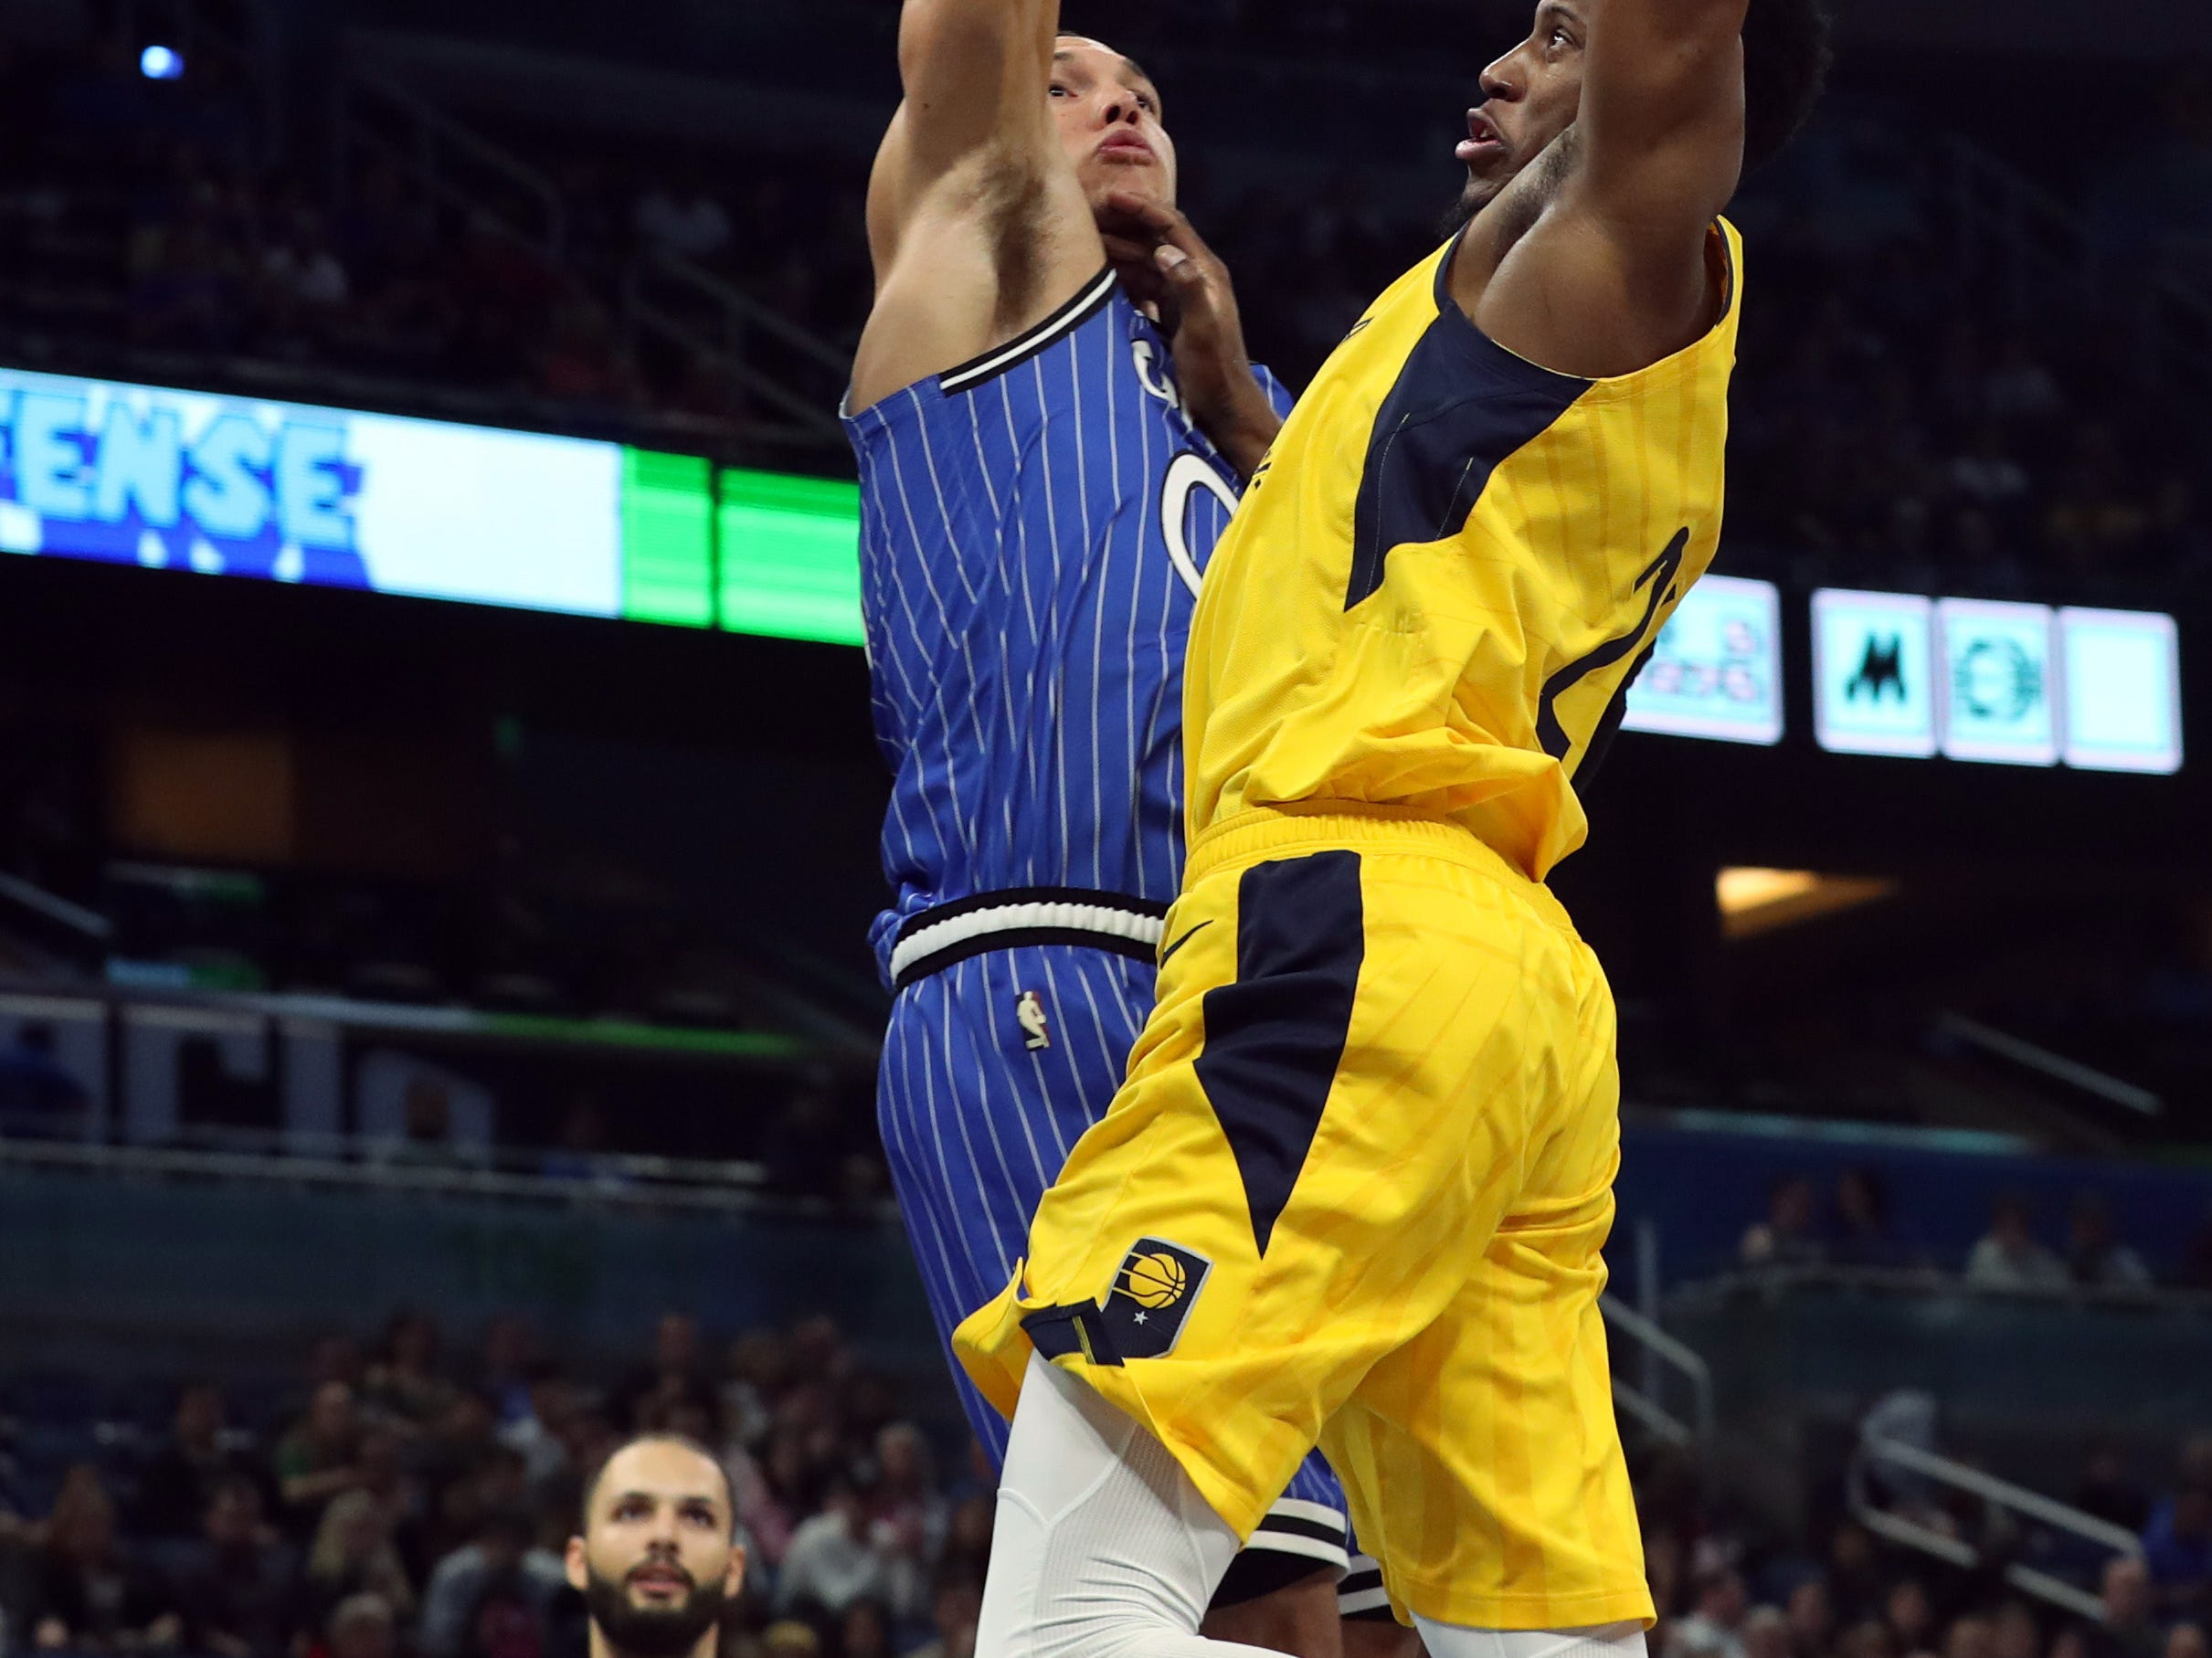 Dec 7, 2018; Orlando, FL, USA; Orlando Magic forward Aaron Gordon (00) defends Indiana Pacers forward Thaddeus Young (21) shot during the first quarter at Amway Center. Mandatory Credit: Kim Klement-USA TODAY Sports